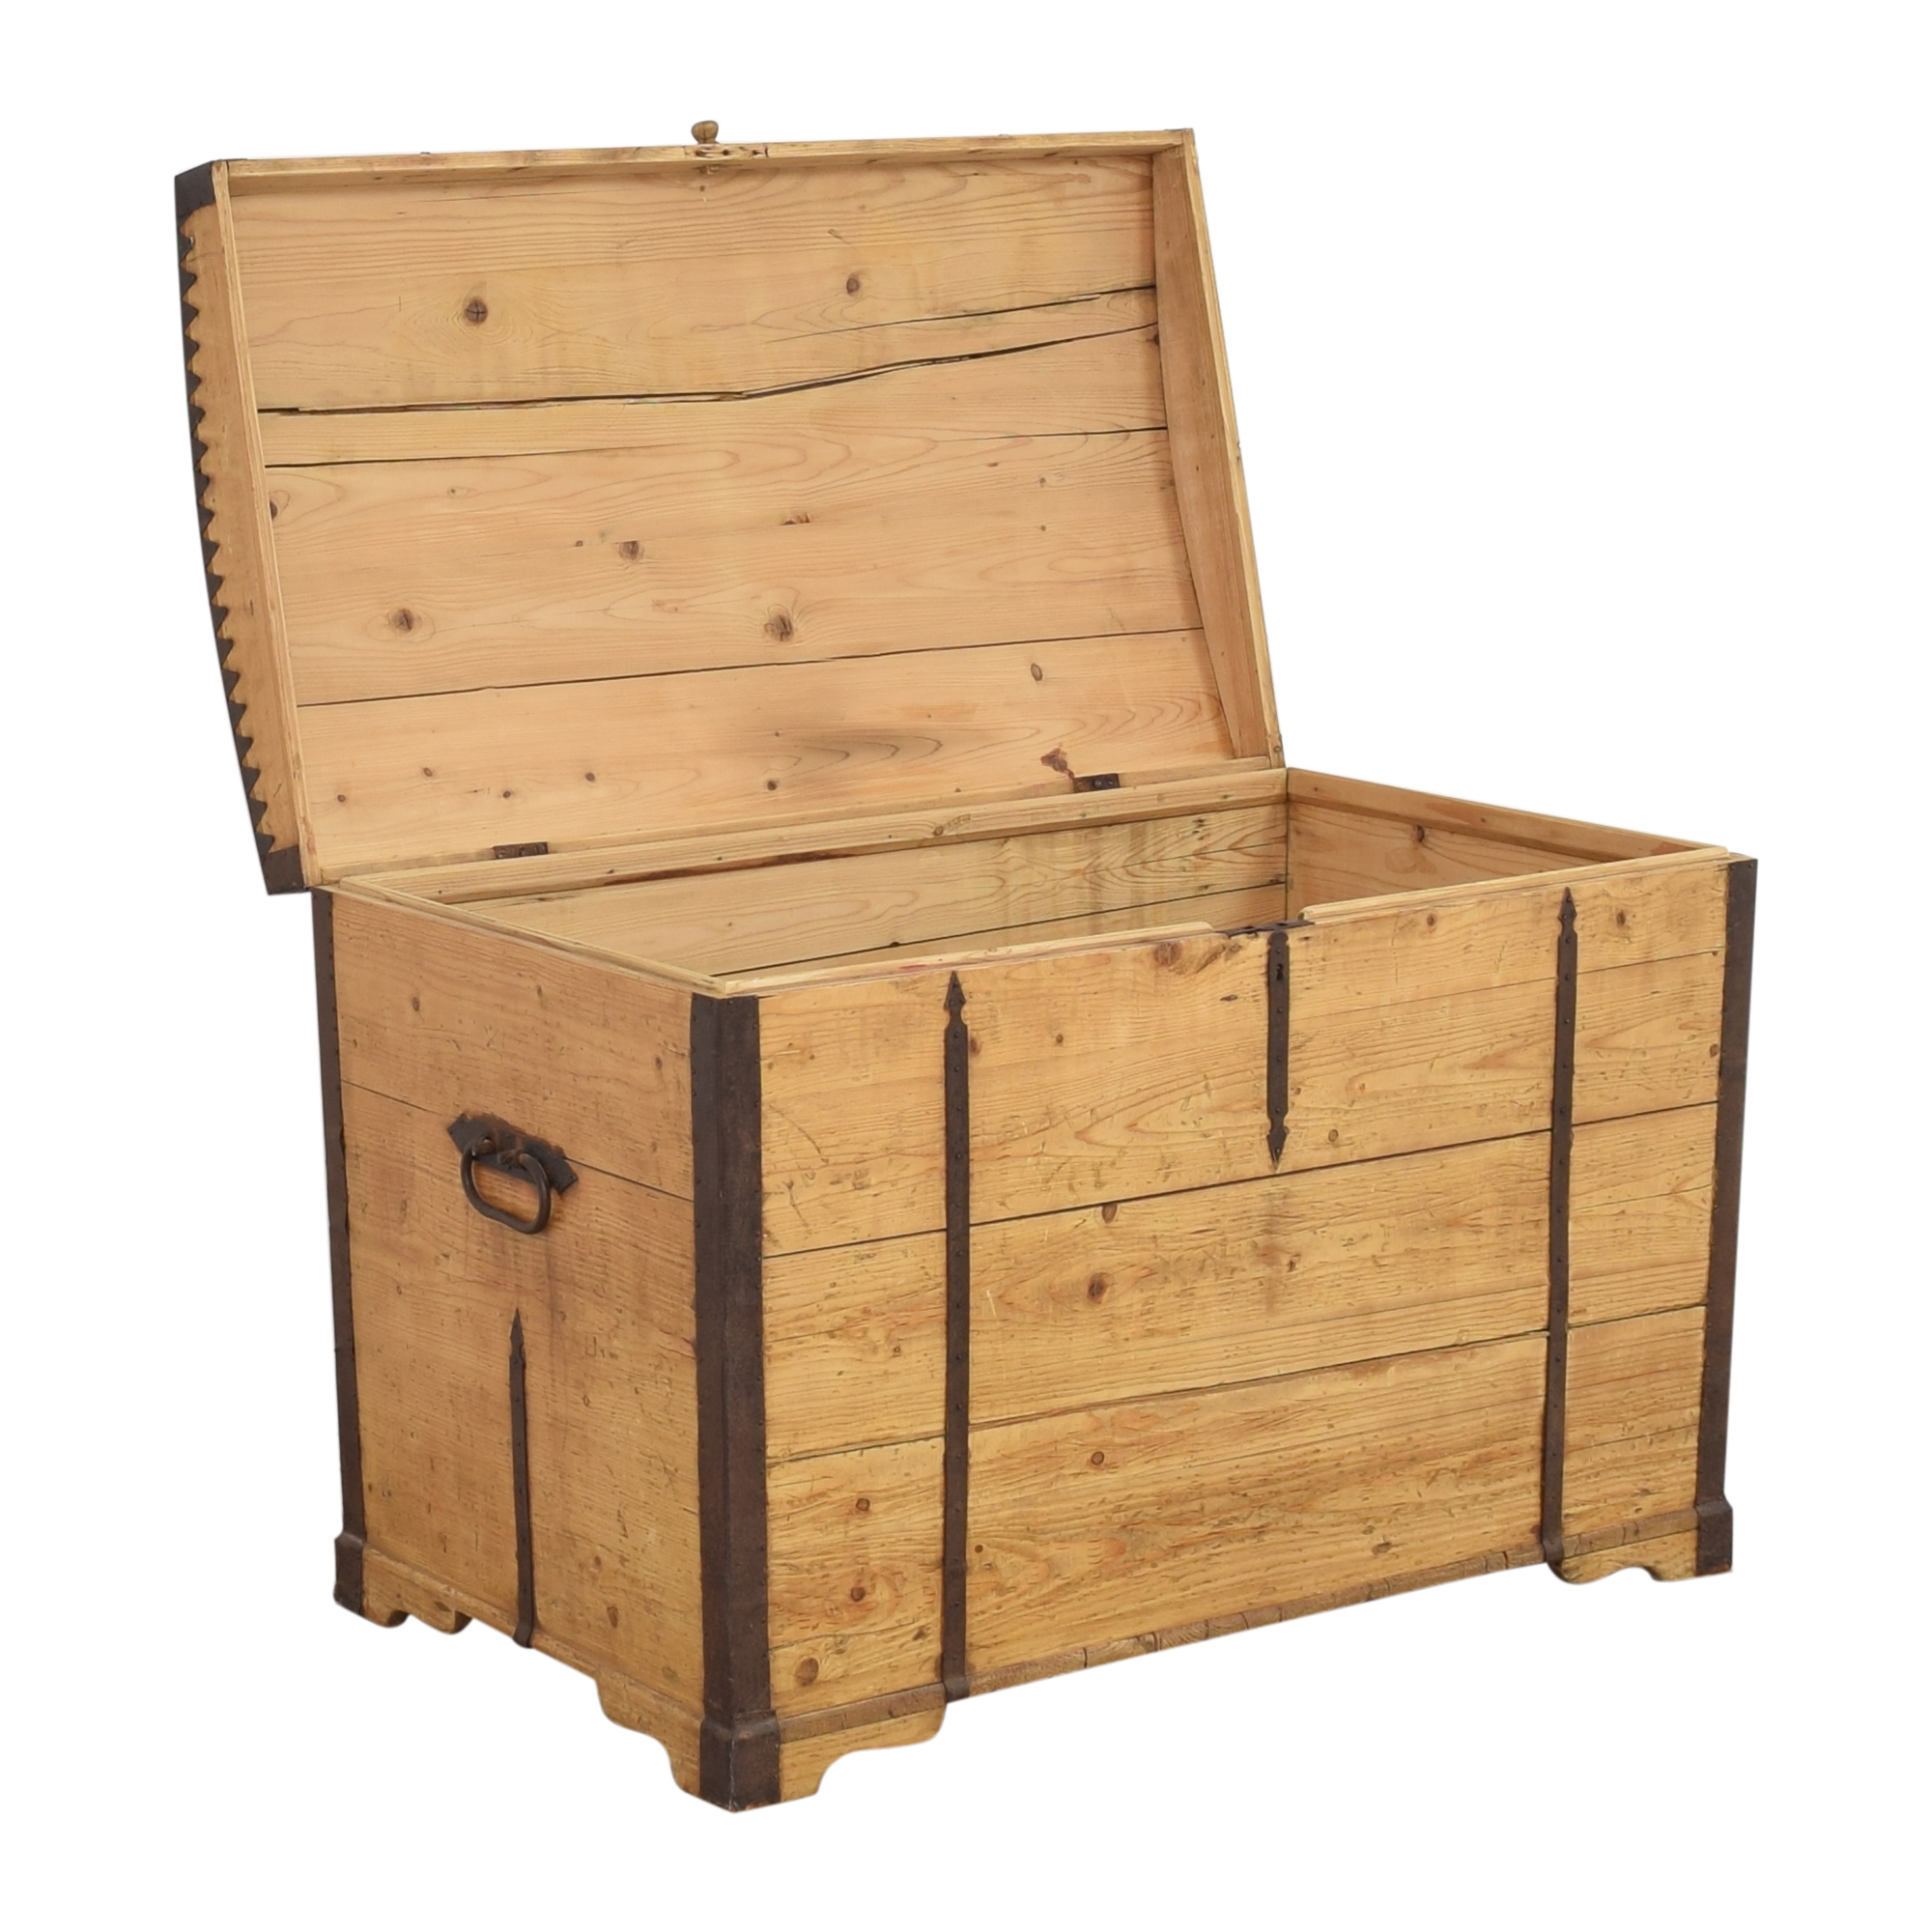 Rustic Storage Trunk ct